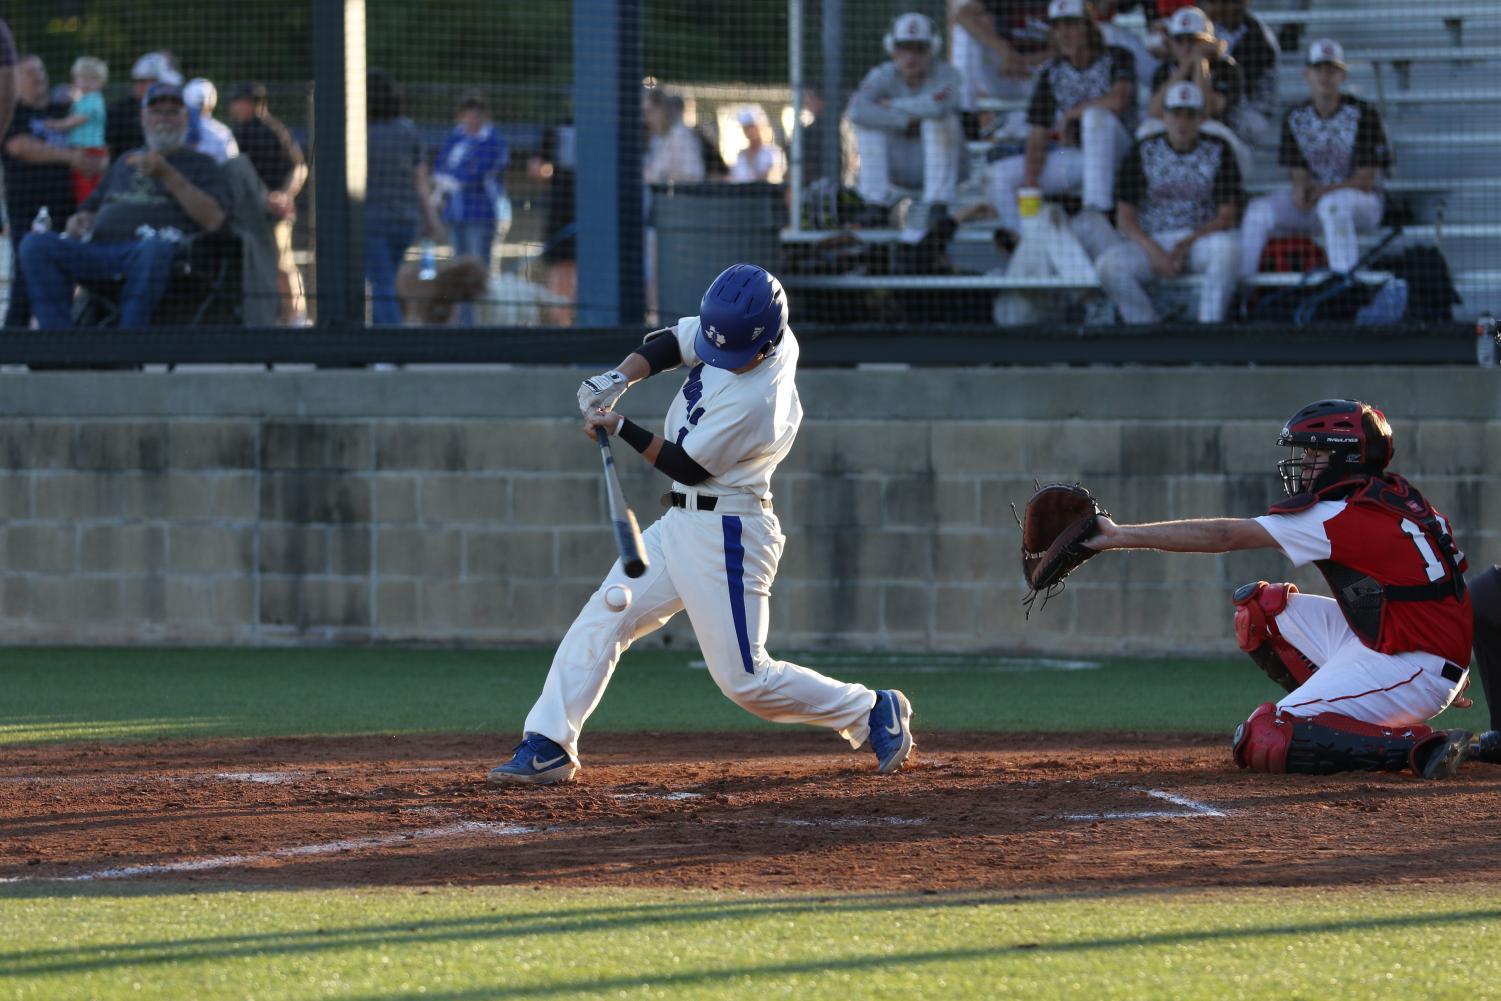 Junior Matt Aubuchon takes a swing at a pitch in the Eagles' final district game of the season. They were named the District Champions following the game and will play Nacogdoches Wednesday, Thursday and possibly Saturday.